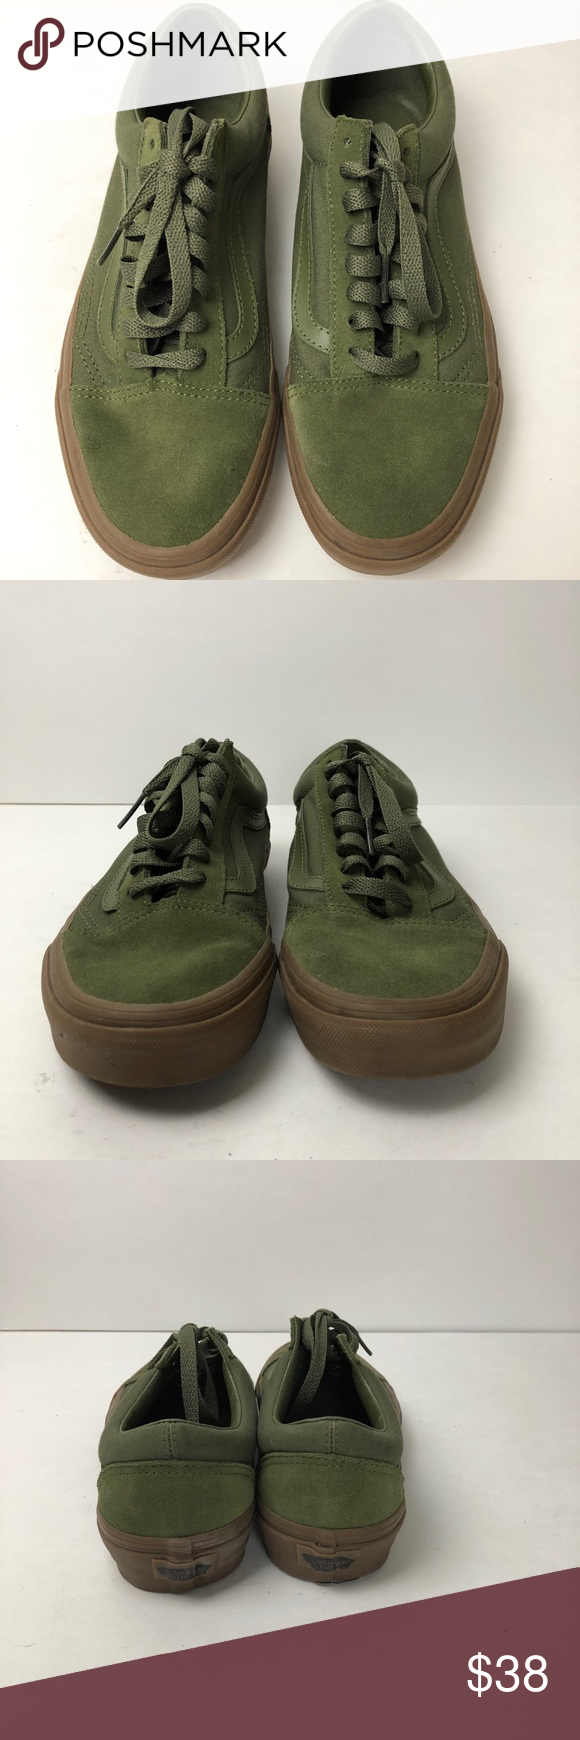 e48b52d8b0 Army Green Vans women s size 9 Men s 7.5 In excellent pre owned condition  almost new! Only worn once! Women s size 9. Men s size 7.5. Vans Shoes  Sneakers